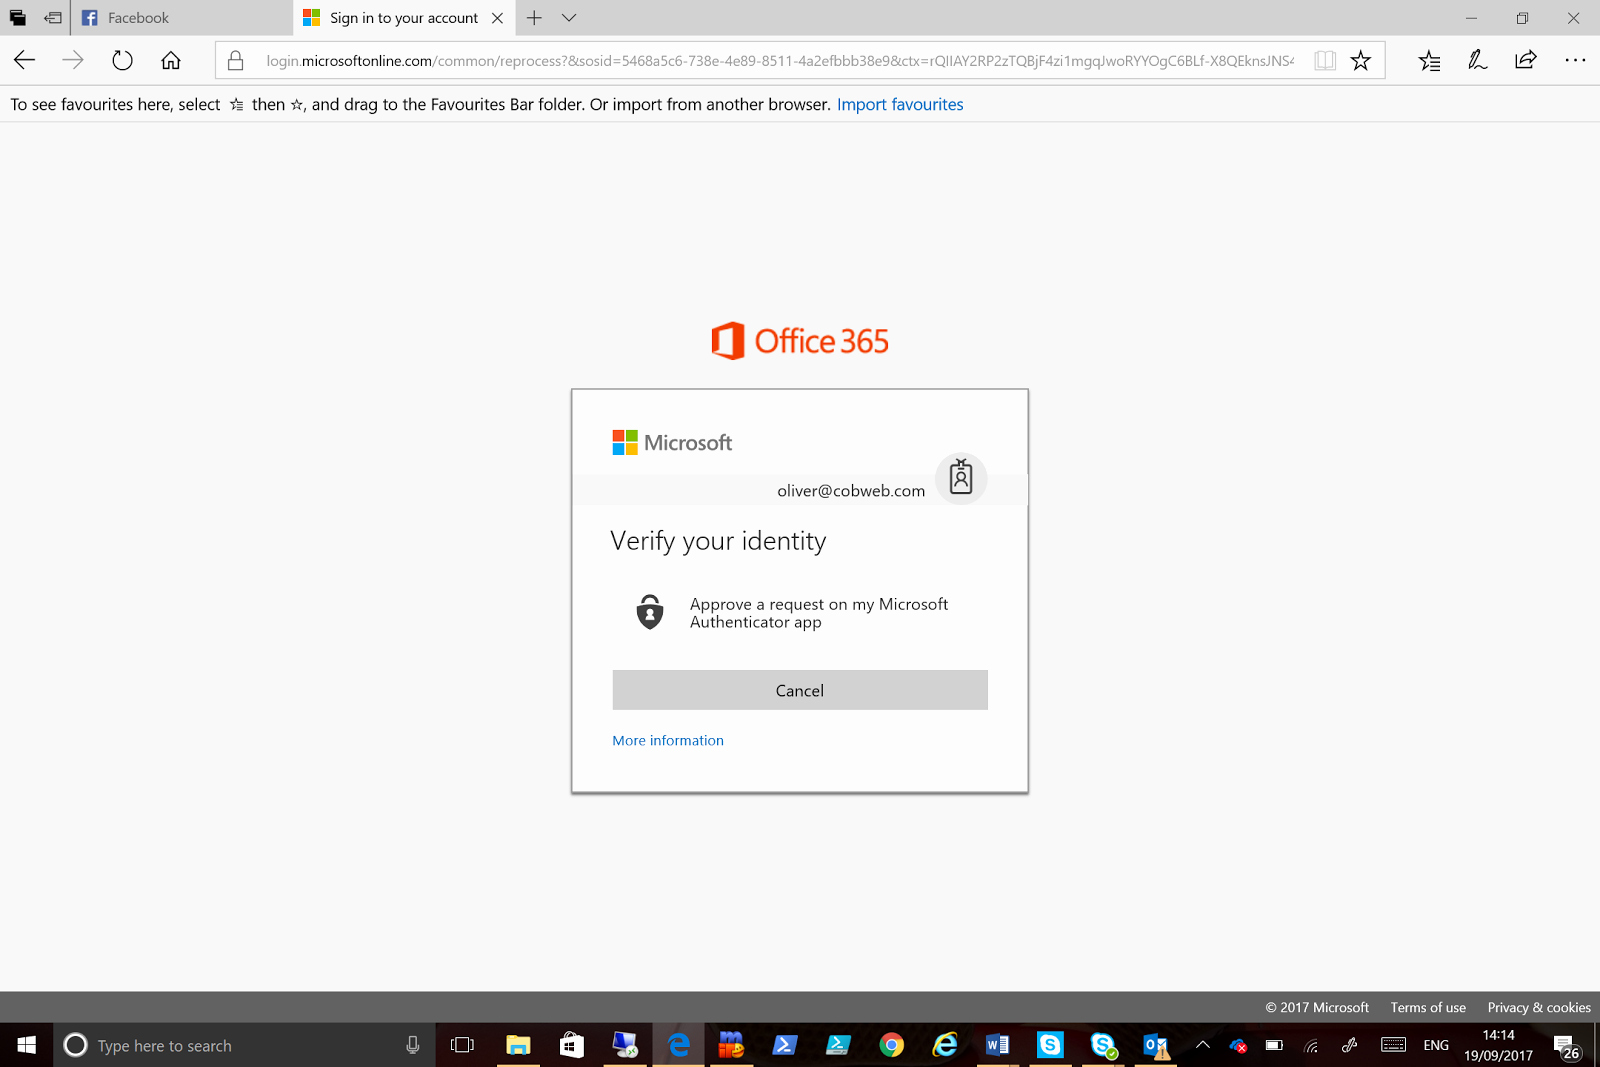 Ms Office 365 Sign In Elegant Wave16 New Fice 365 Sign In Experience and